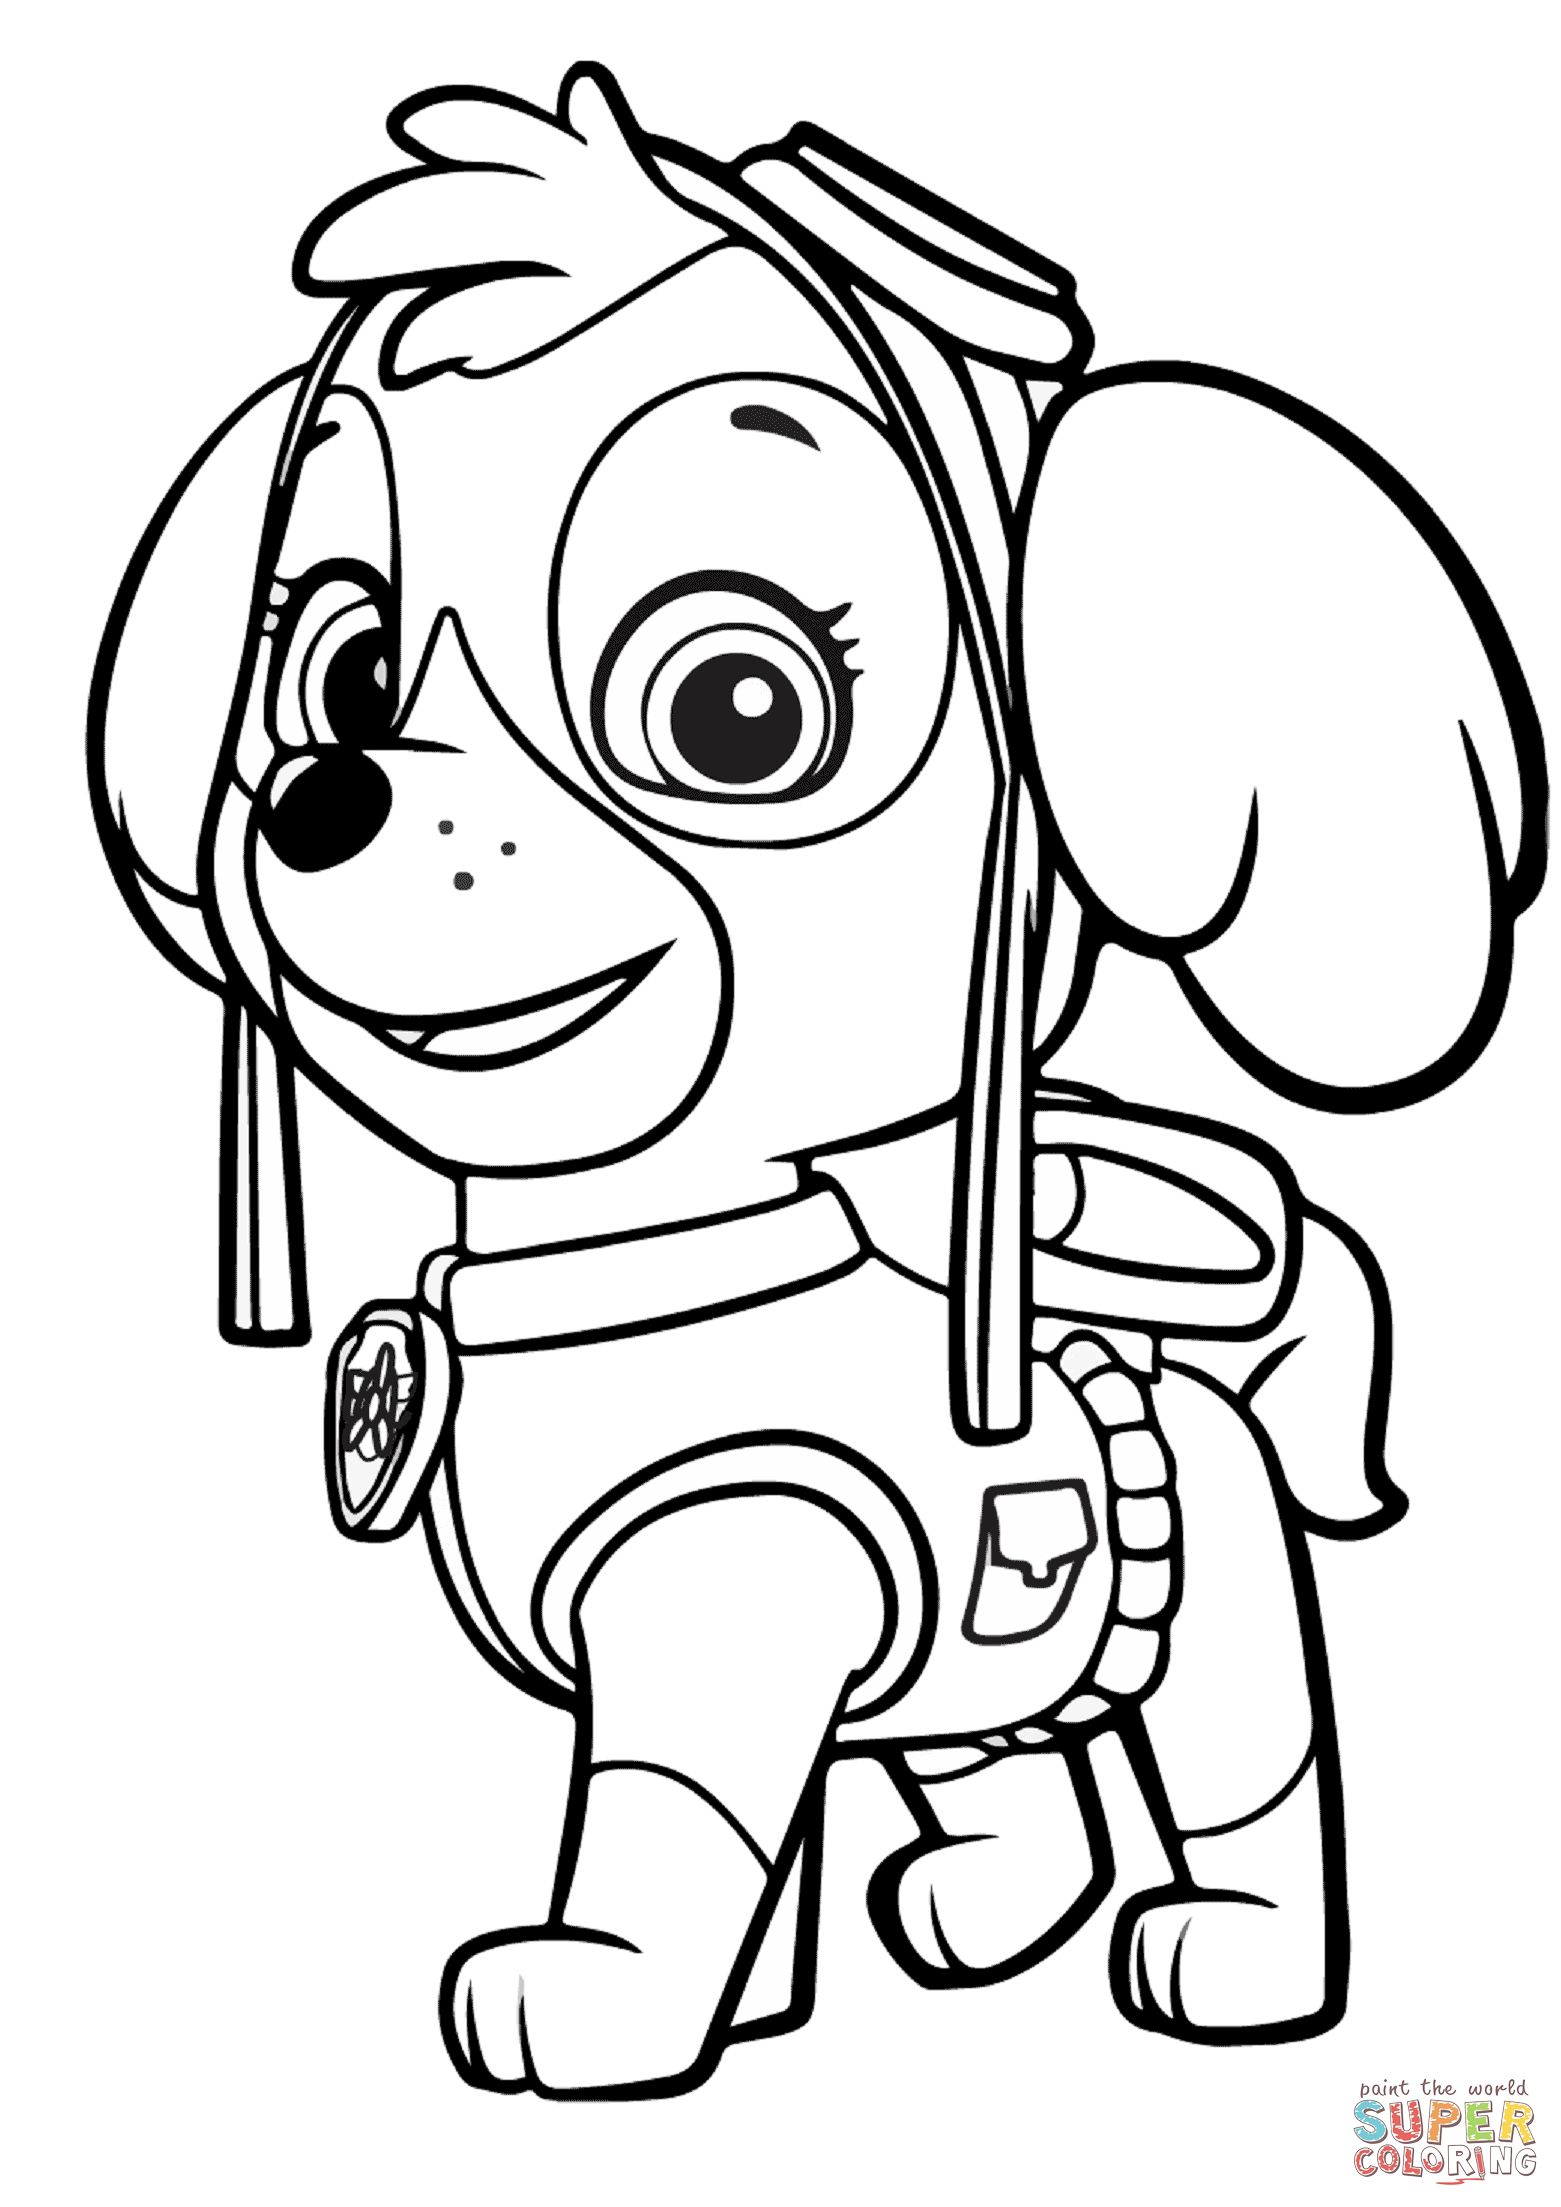 Paw Patrol Coloring Pages Paw Patrol Skye Coloring Page Free Printable Coloring Pages Albanysinsanity Com Paw Patrol Coloring Pages Paw Patrol Coloring Puppy Coloring Pages